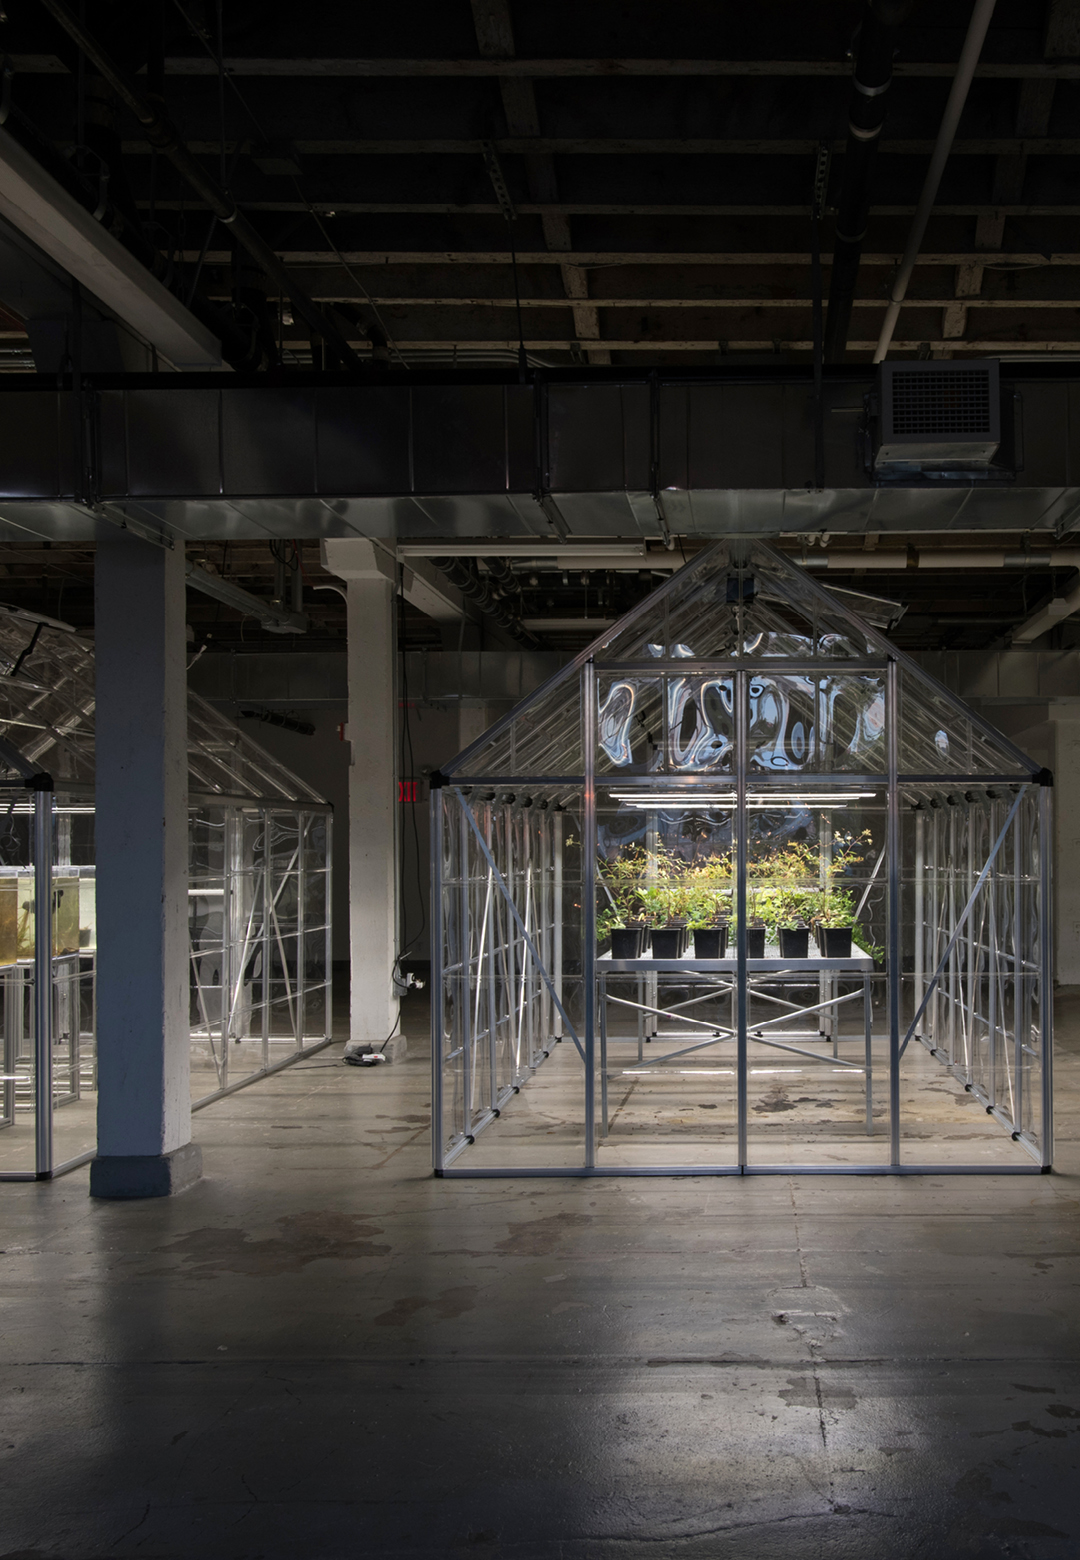 Michael Wang, Extinct in New York, Installation View 1, Lower Manhattan Cultural Council's Arts Center at Governors Island, New York, 2019 | Extinct in New York| Michael Wang| STIRworld